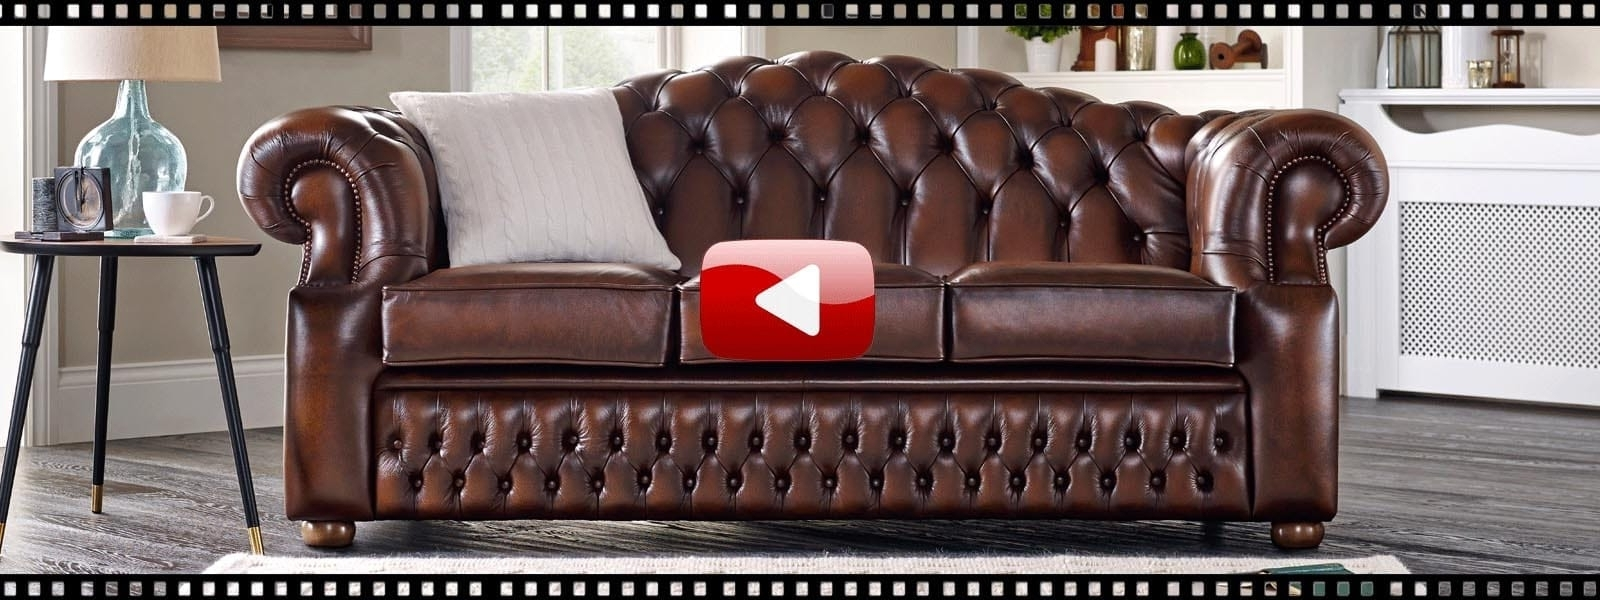 Preferred Oxford Sofas Throughout Oxford 3 Seater Sofa – From Sofassaxon Uk (View 8 of 15)